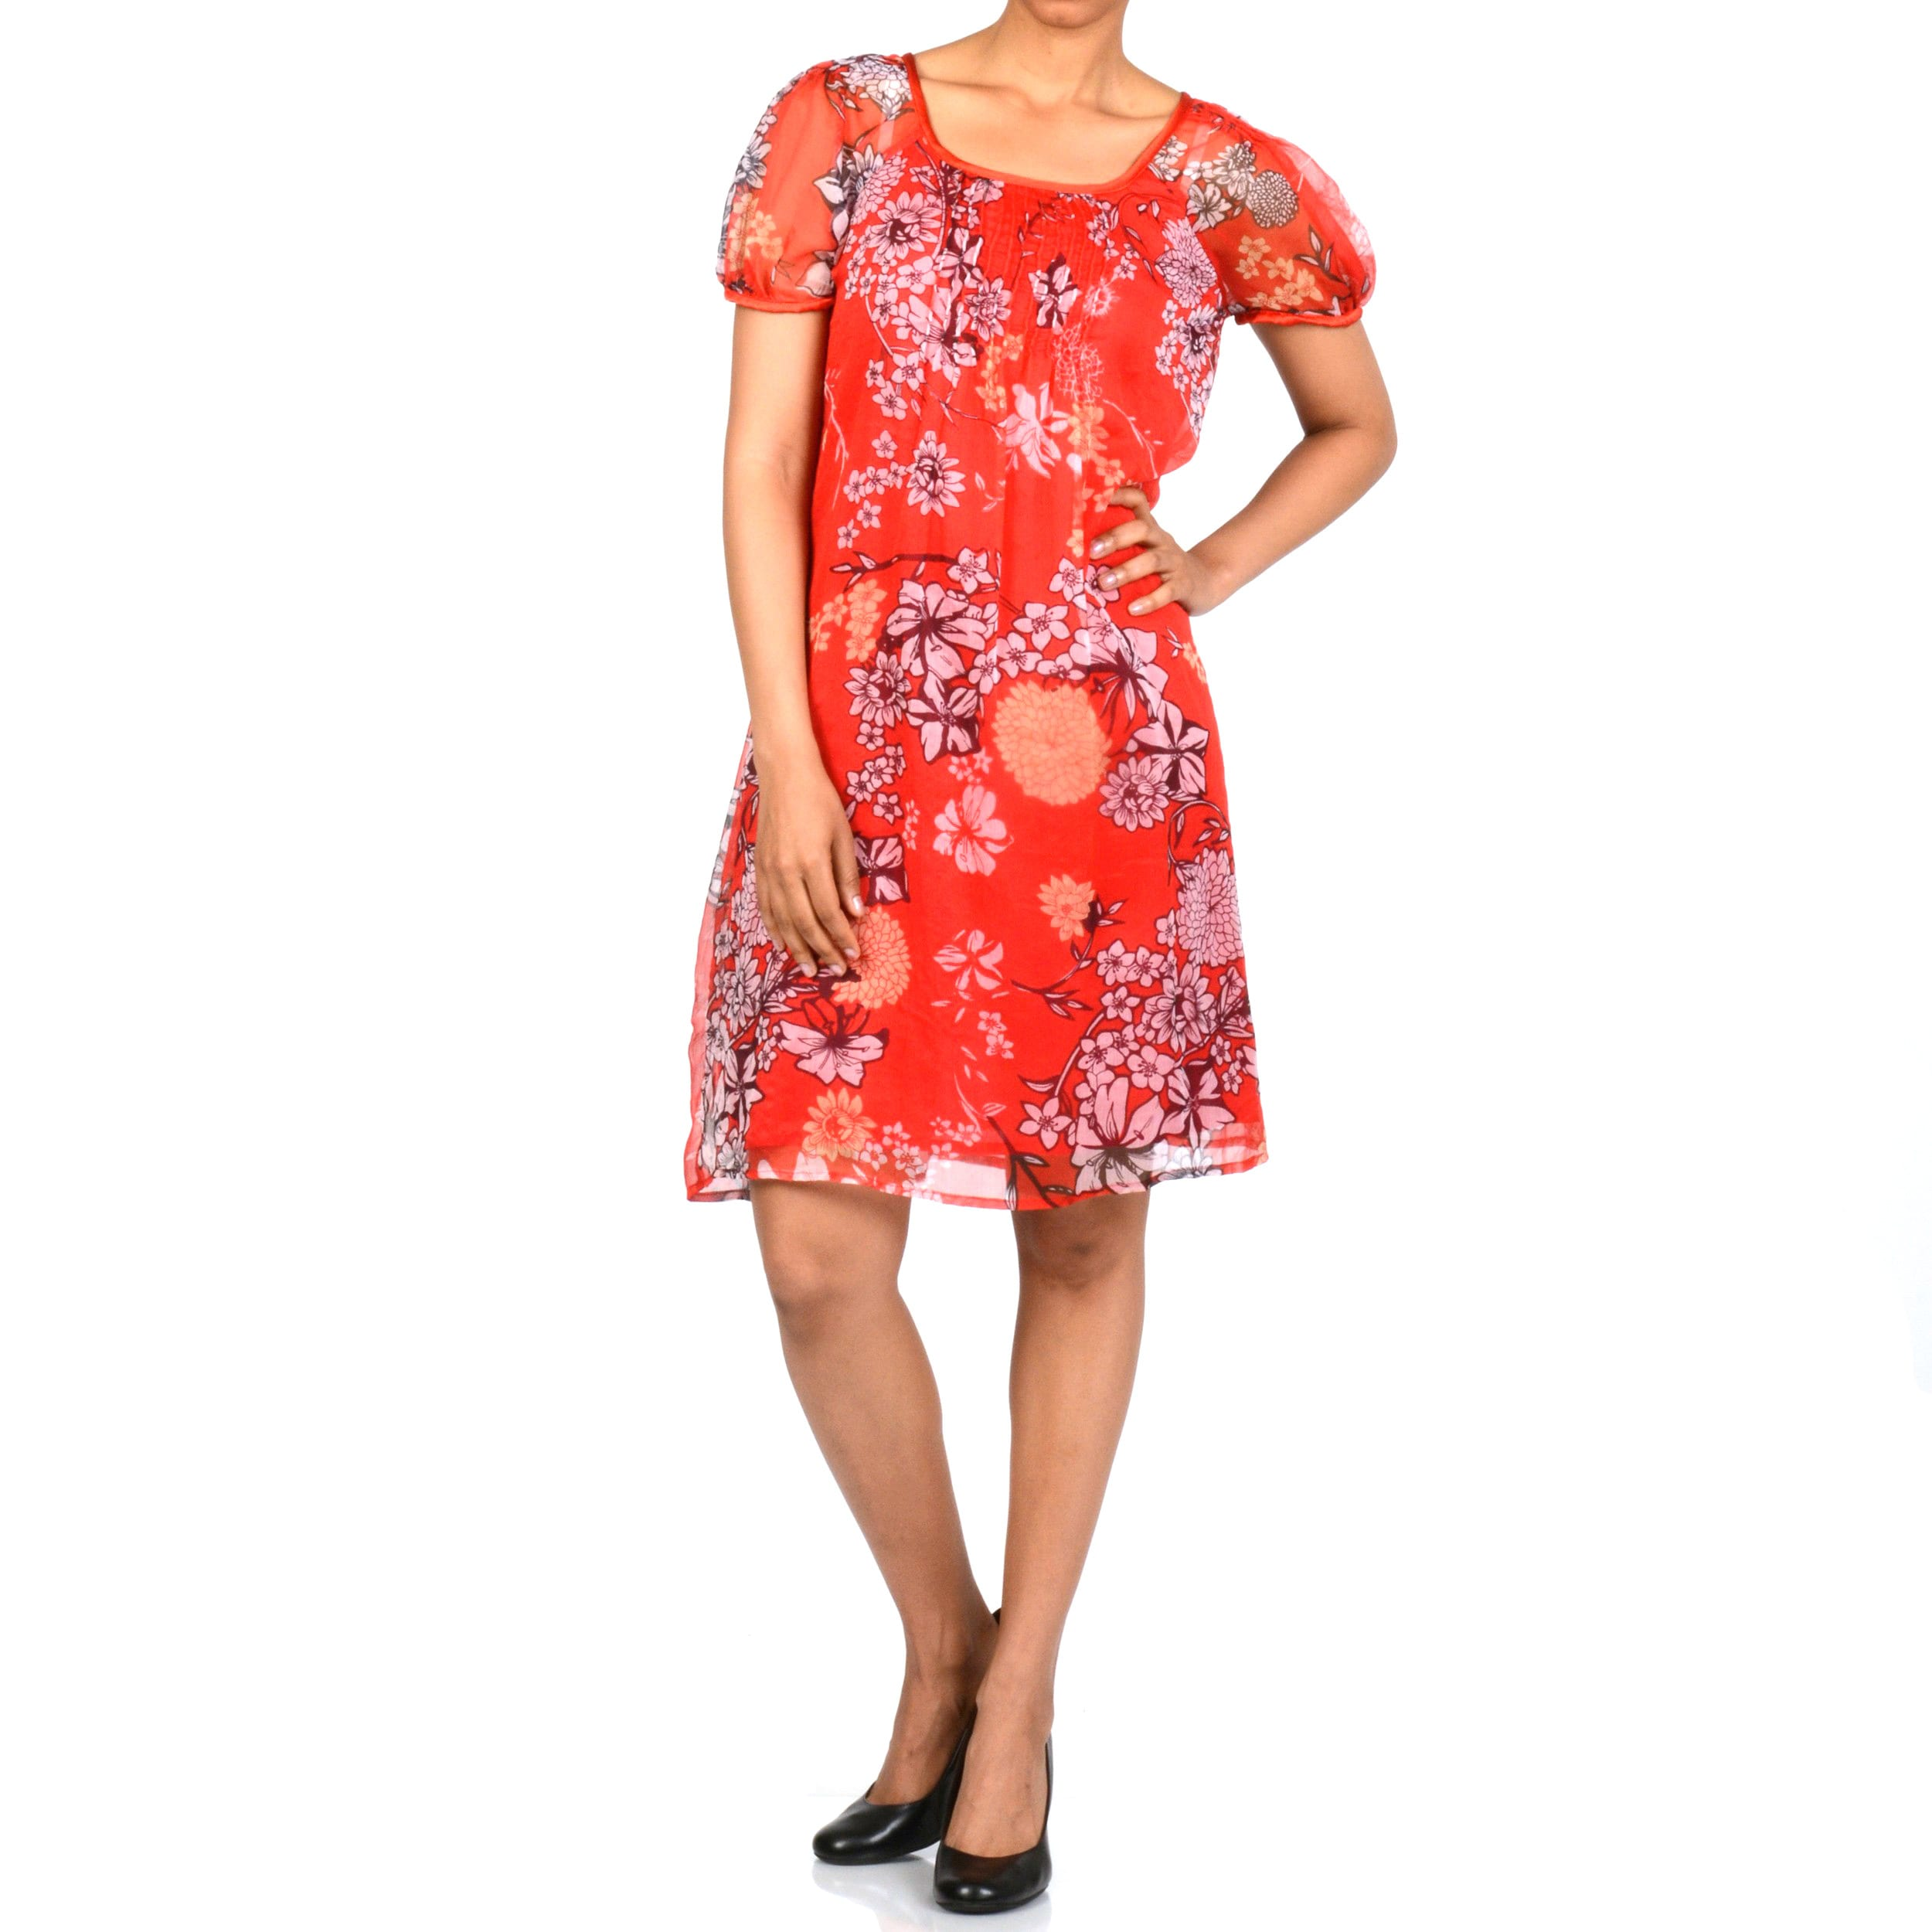 23fd379ce3880 Shop La Cera Women s Short Sleeve Pleated Chiffon Floral Dress - Free  Shipping On Orders Over  45 - Overstock.com - 6023948